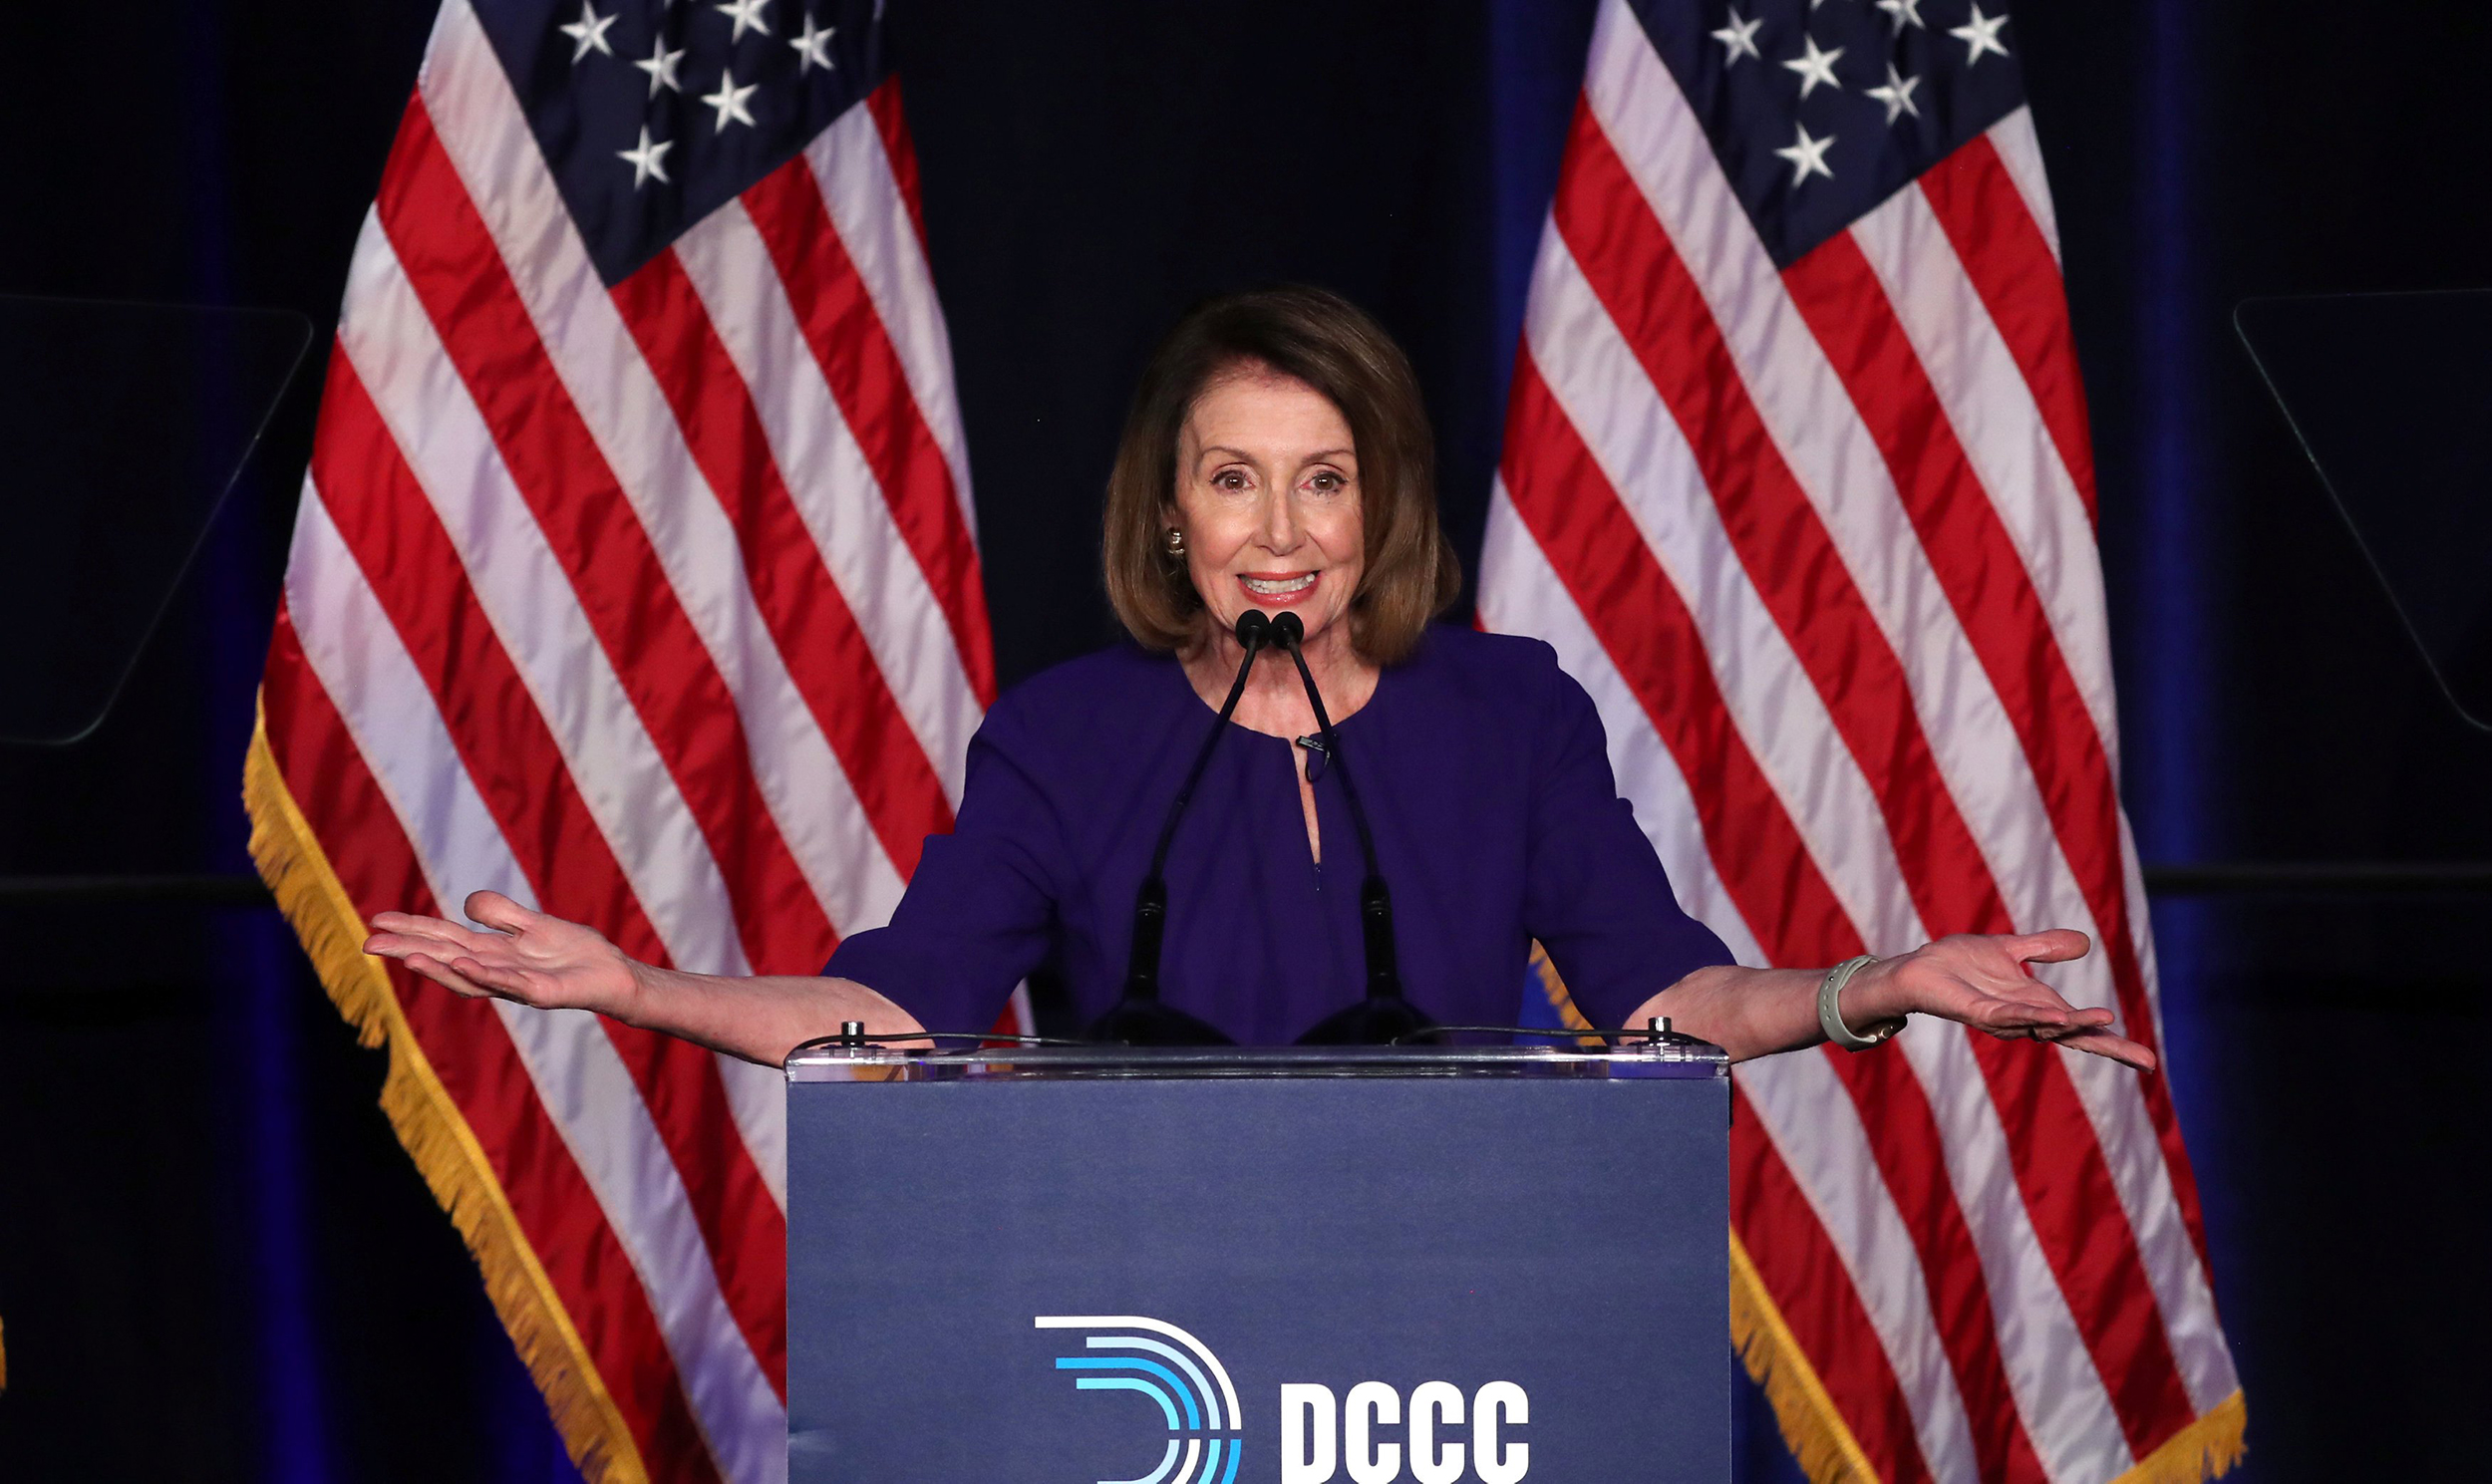 Do Democrats really want to stop Pelosi from becoming speaker?